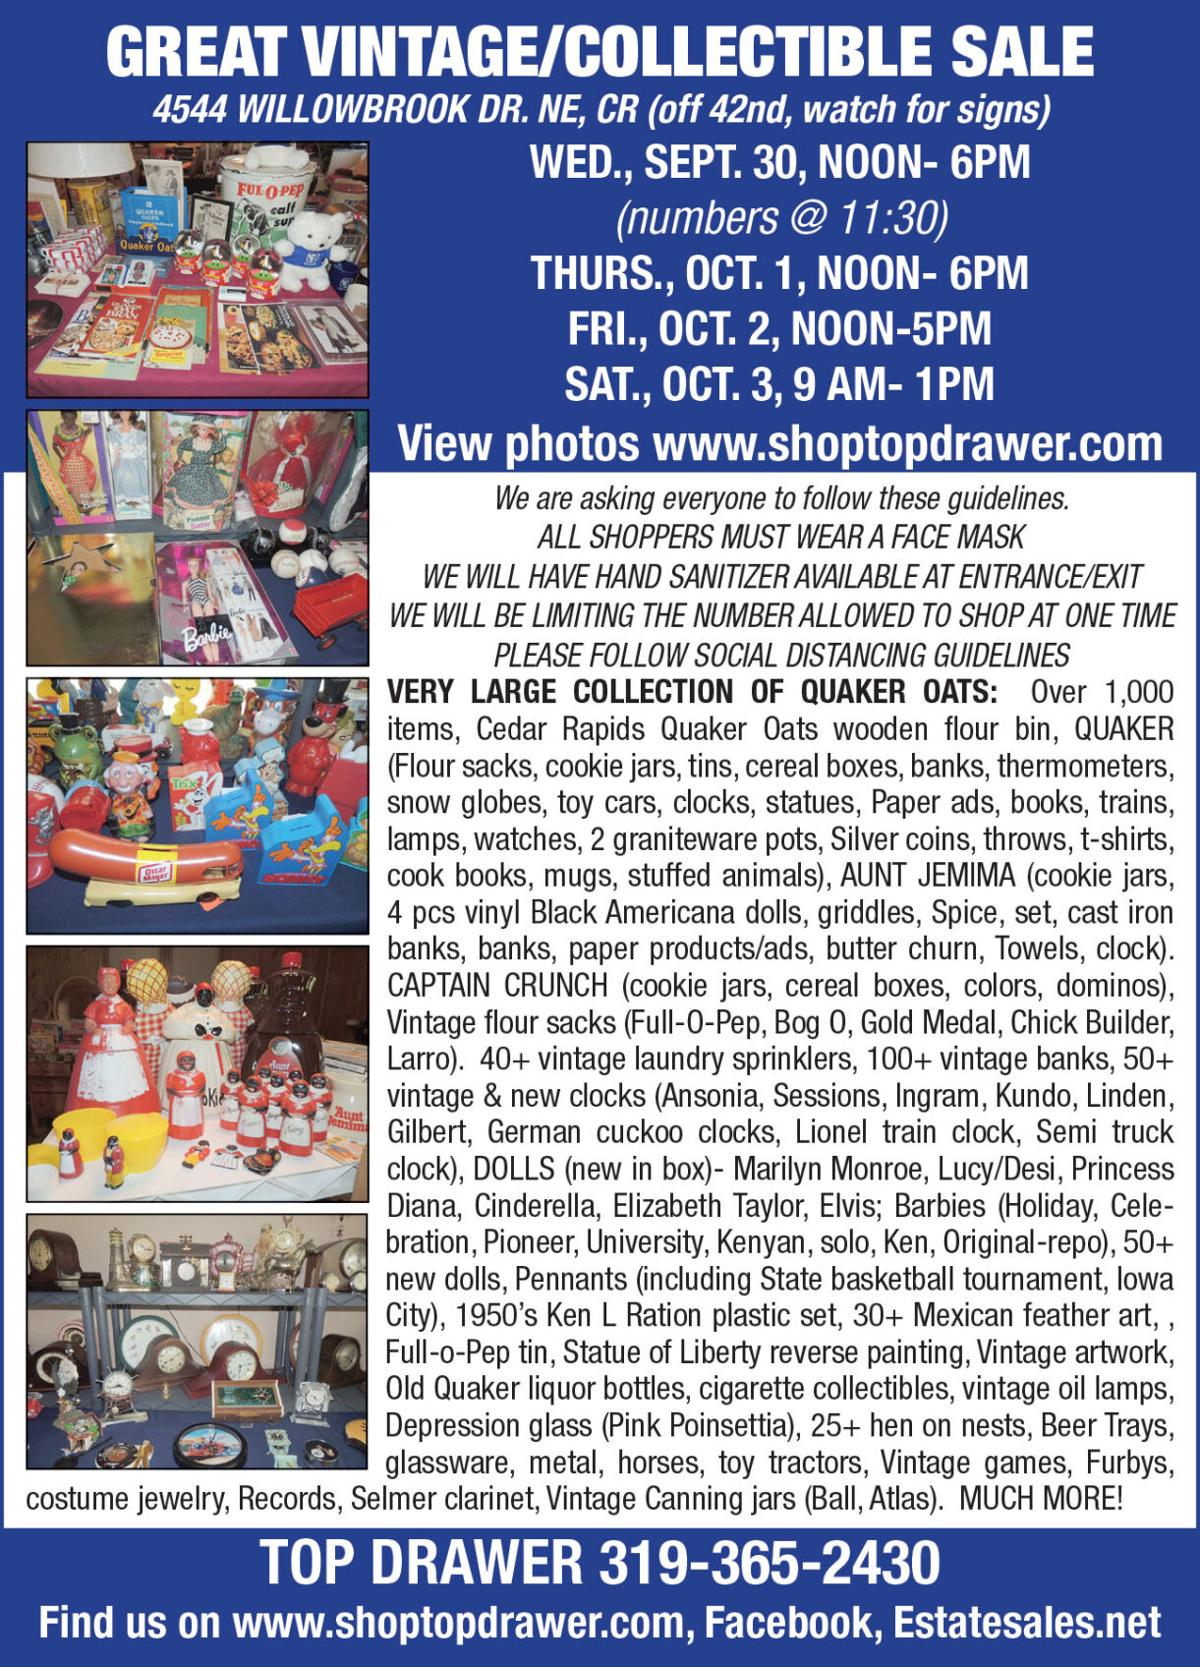 Large Collection of Quaker Oats memorabilia, Aunt Jemima Collectibles, Toy Tractors, Vintage Games, 25+ Hen on Nests and more